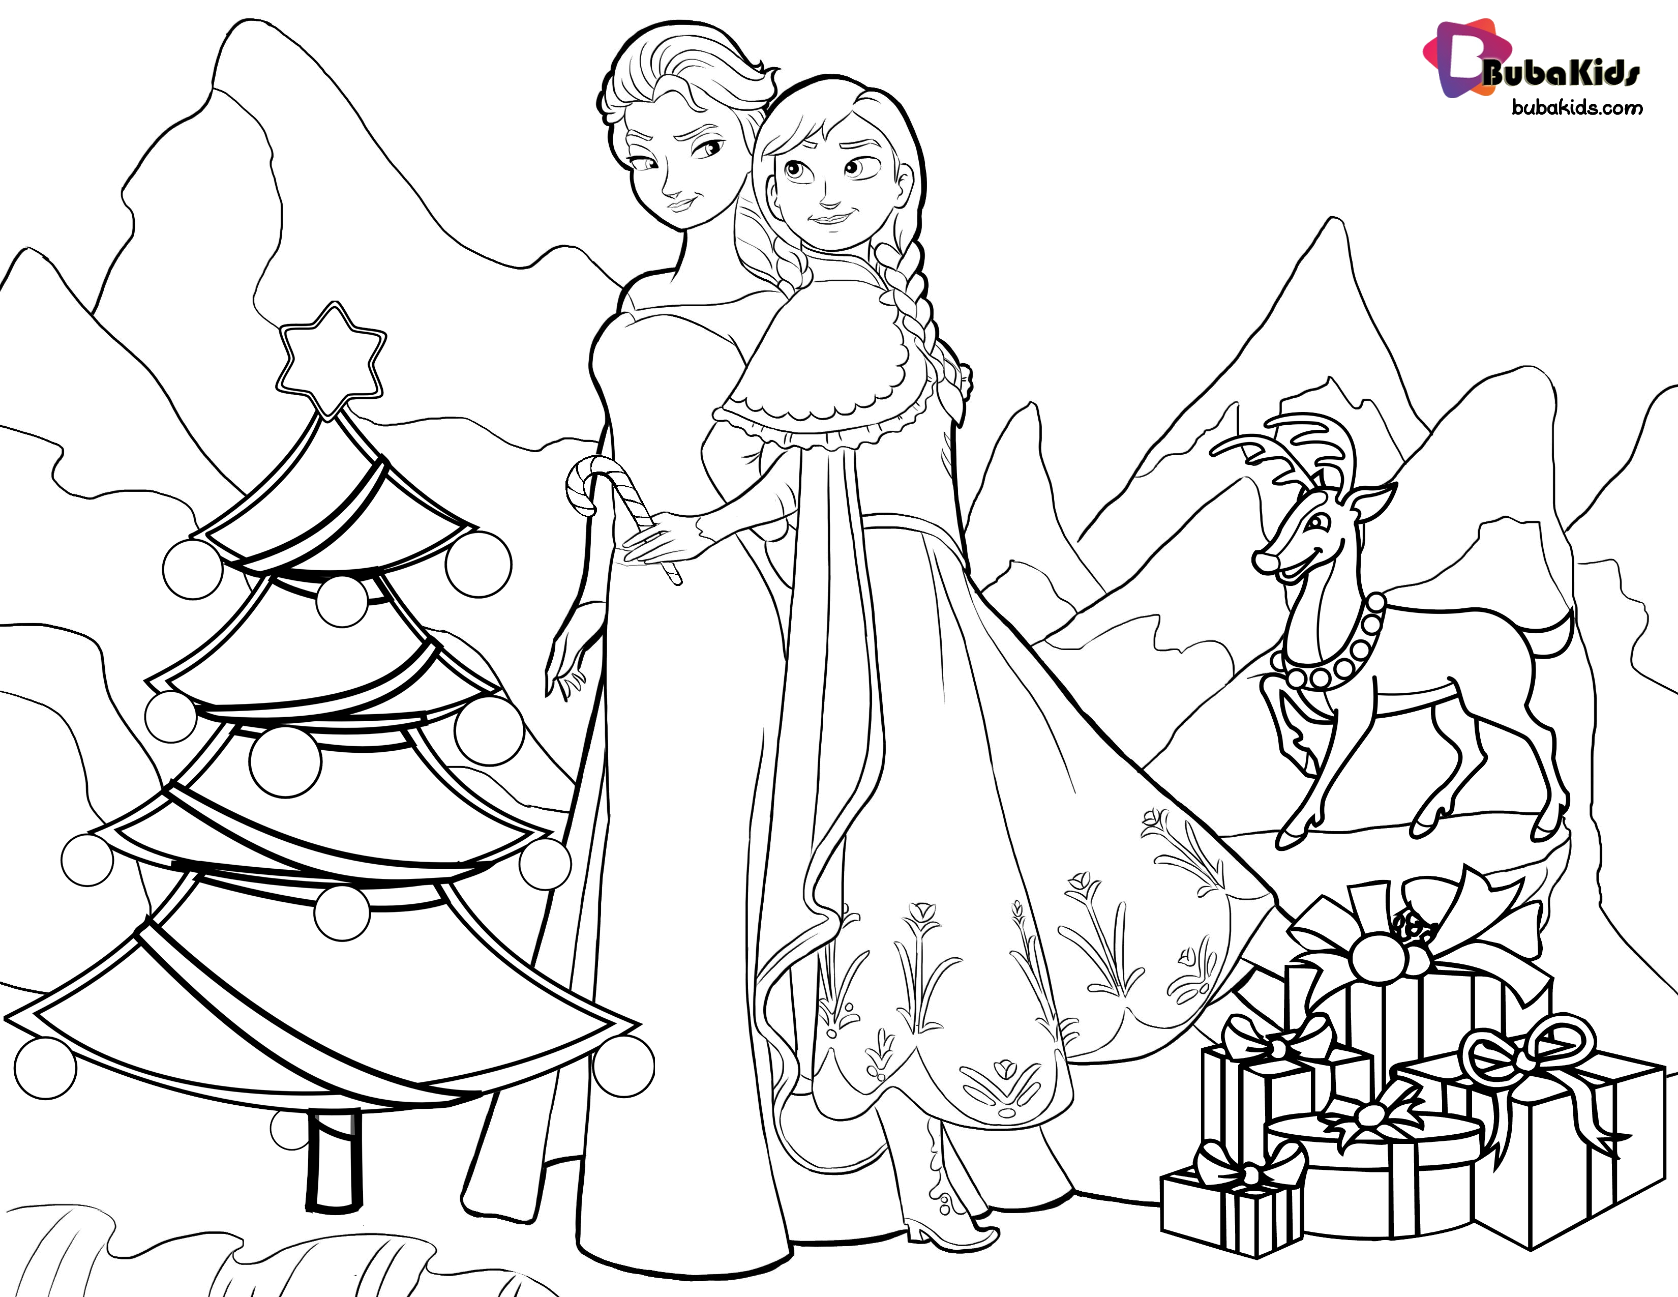 Frozen Queen Elsa And Princess Anna Christmas Coloring Page Free Download And Printabl Princess Coloring Pages Christmas Coloring Pages Mermaid Coloring Pages